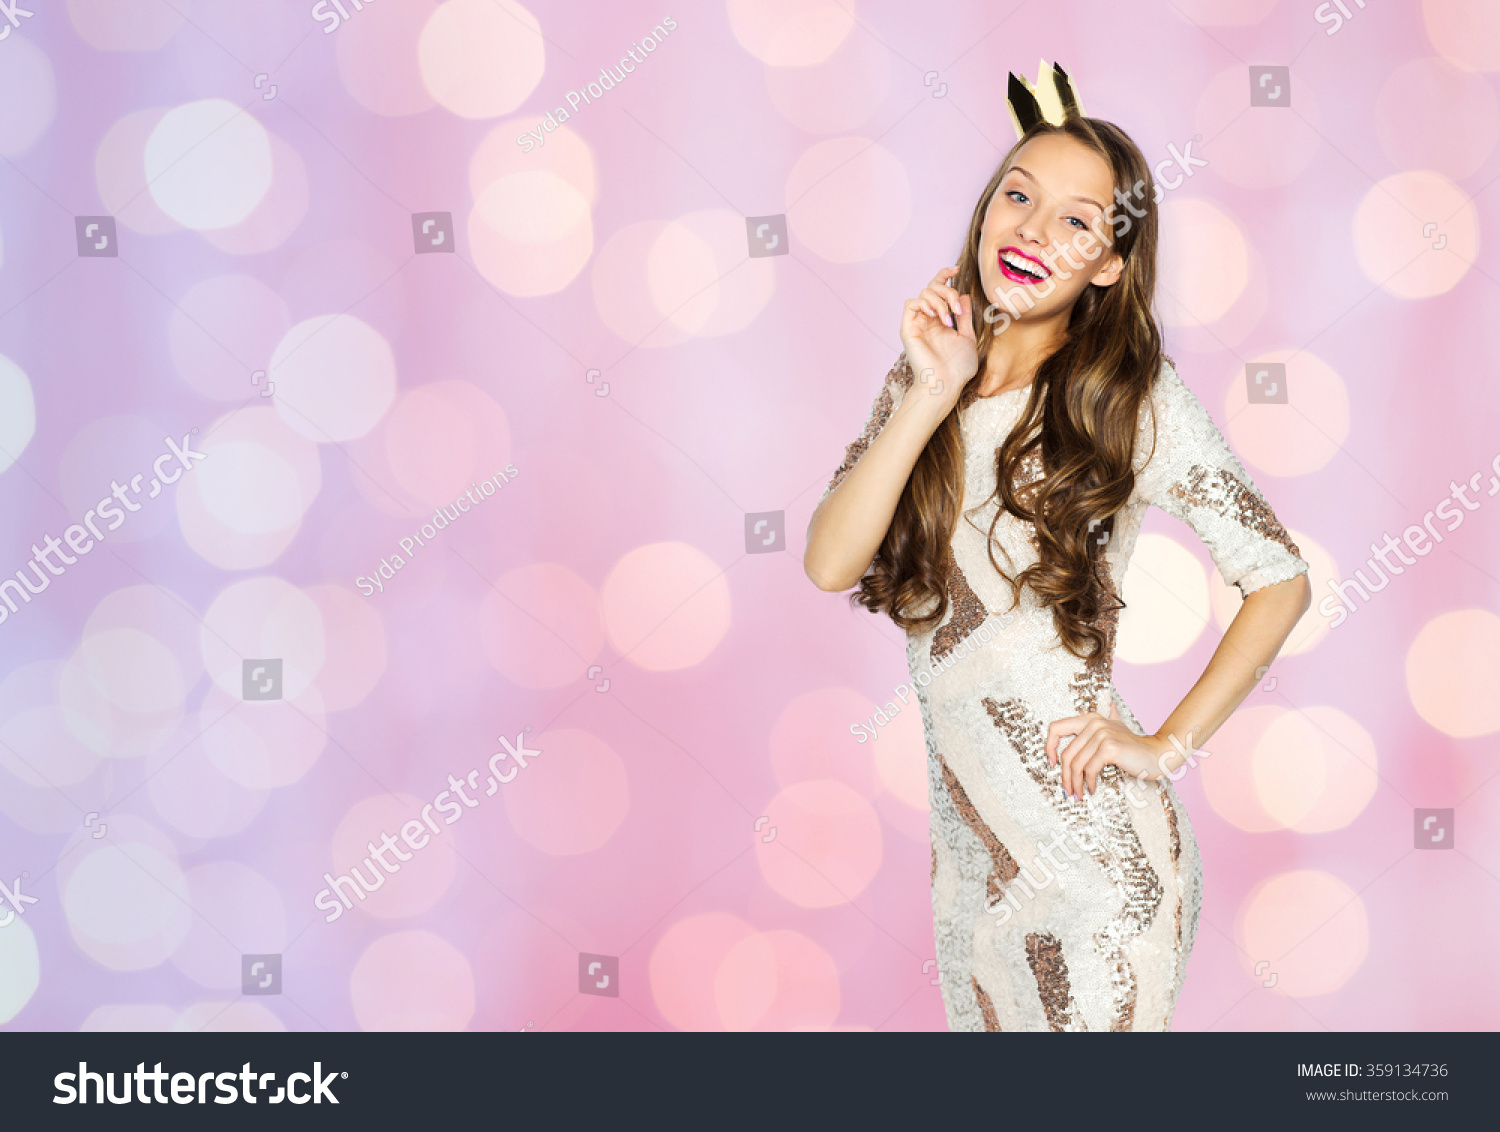 Happy Young Woman Girl Party Dress Stock Photo 359134736 - Shutterstock